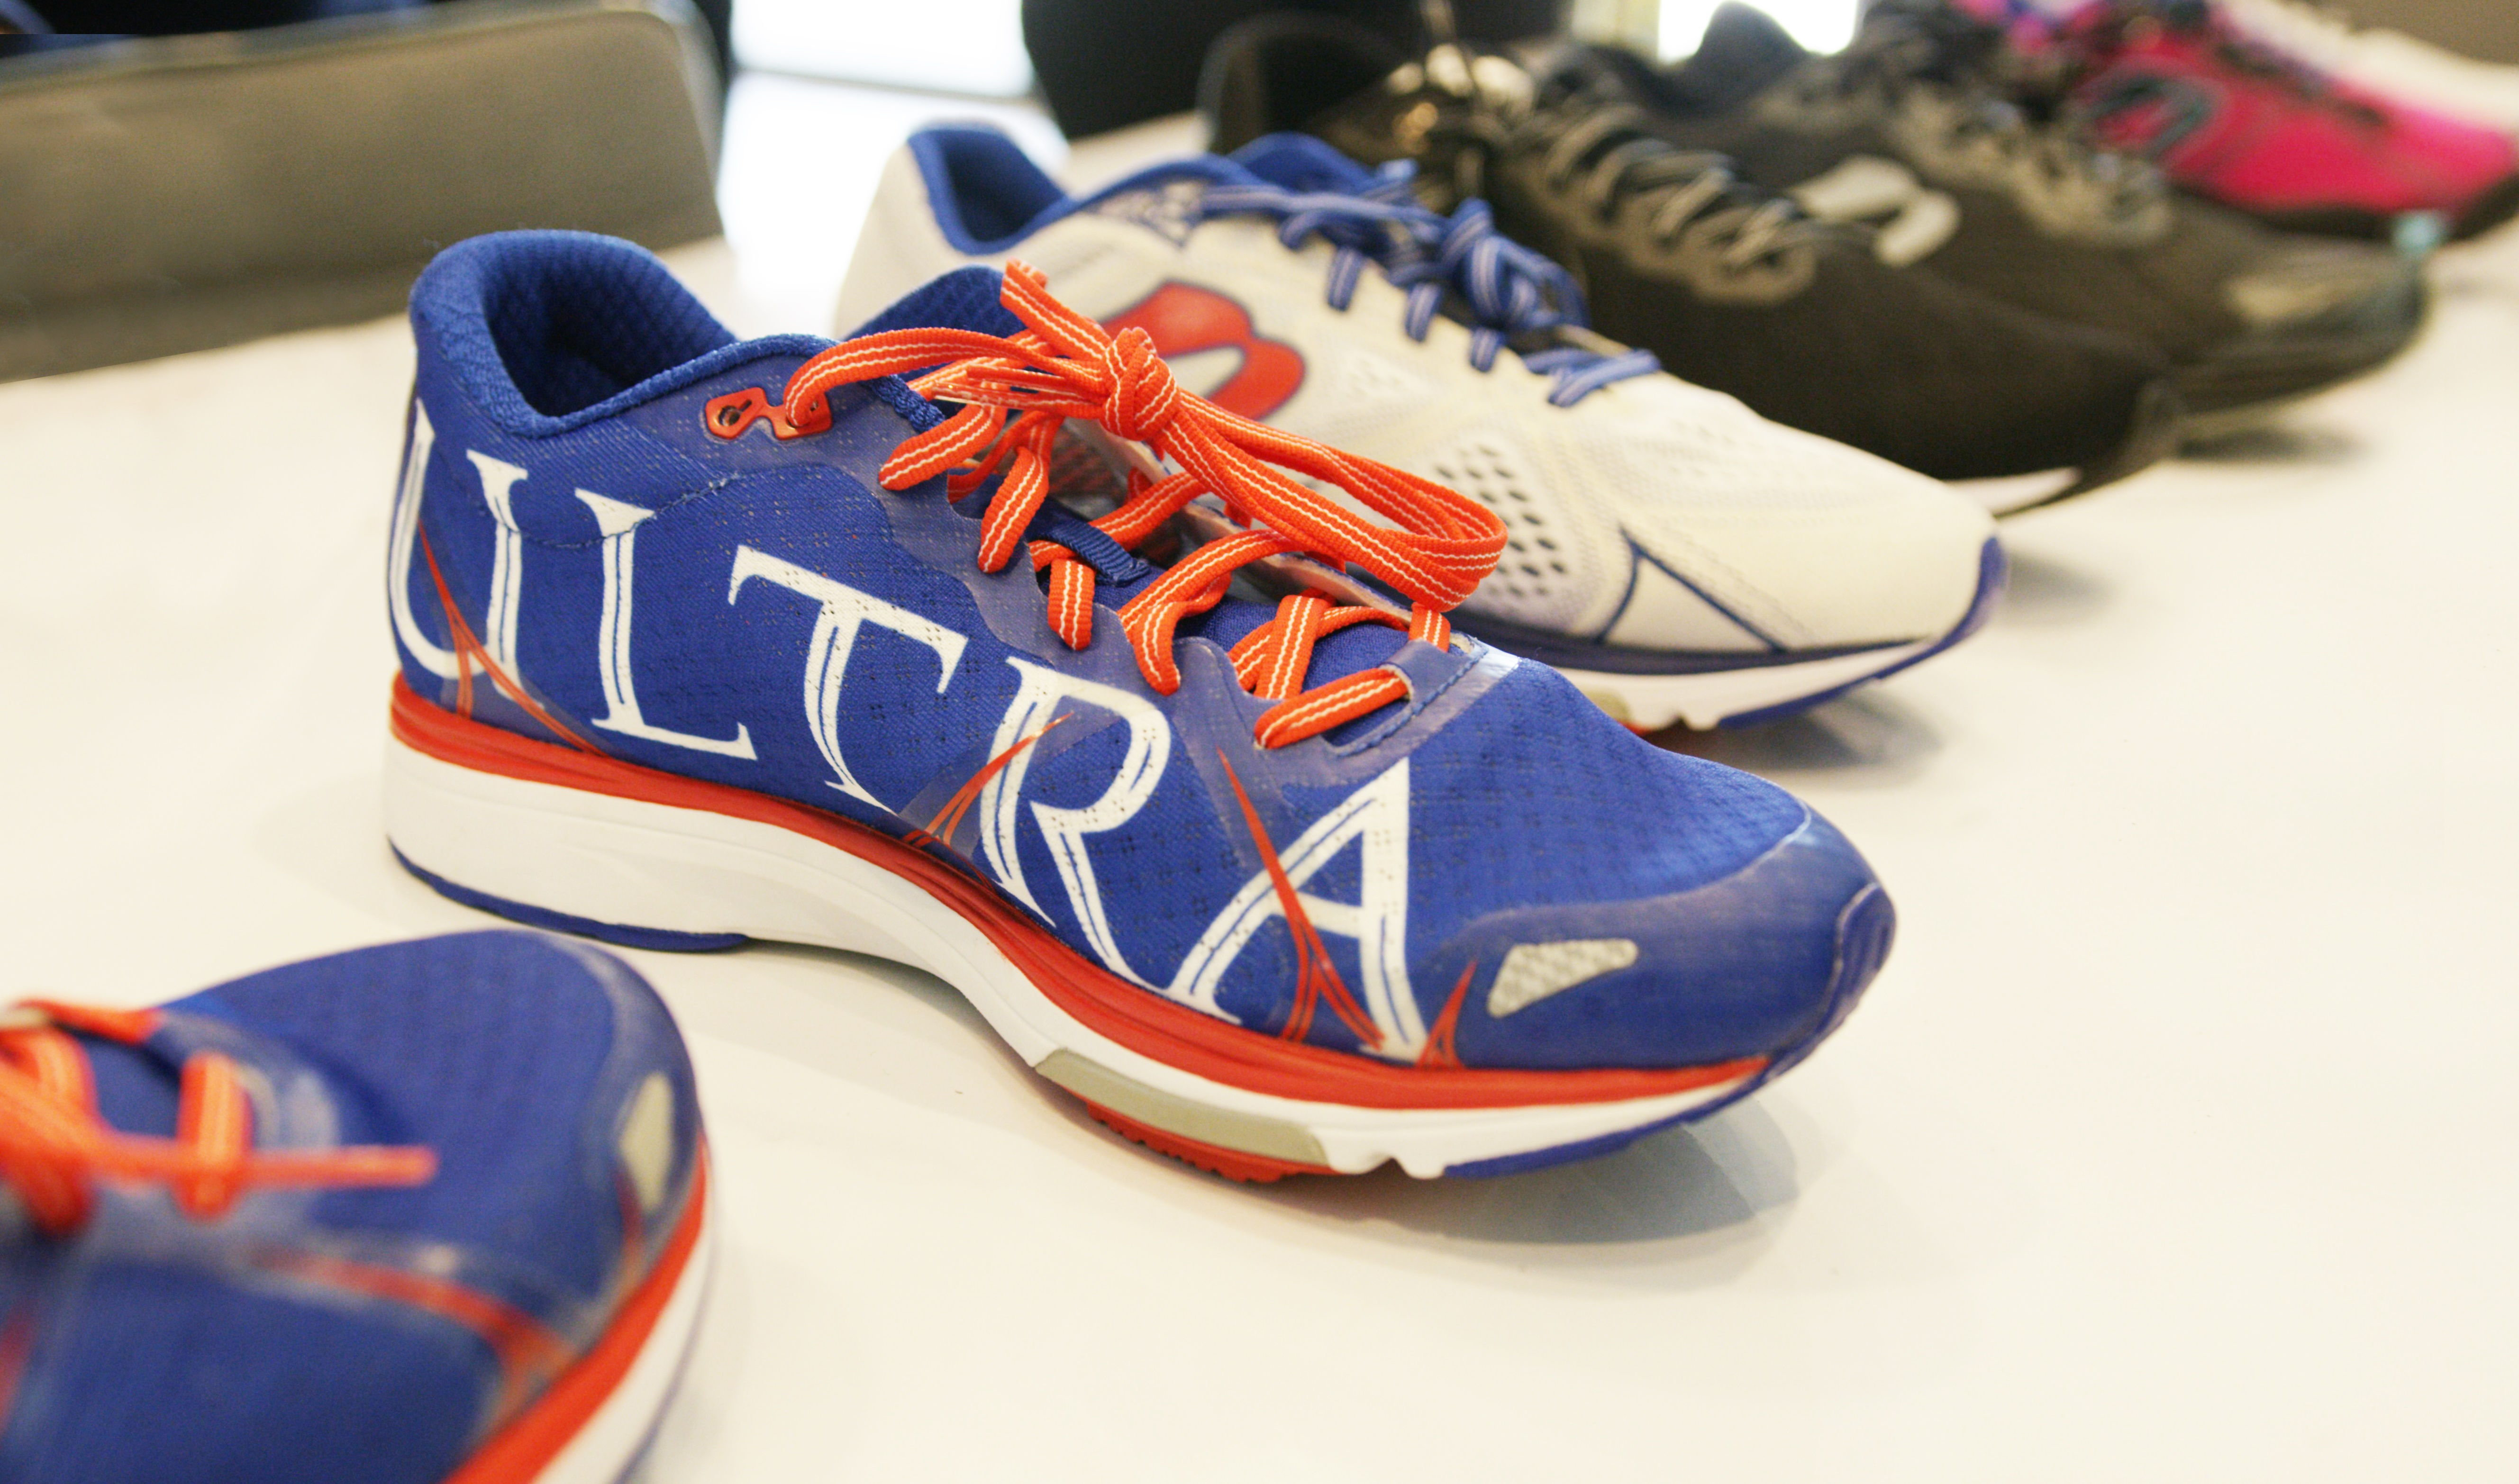 The Newton Ultra branded running shoe